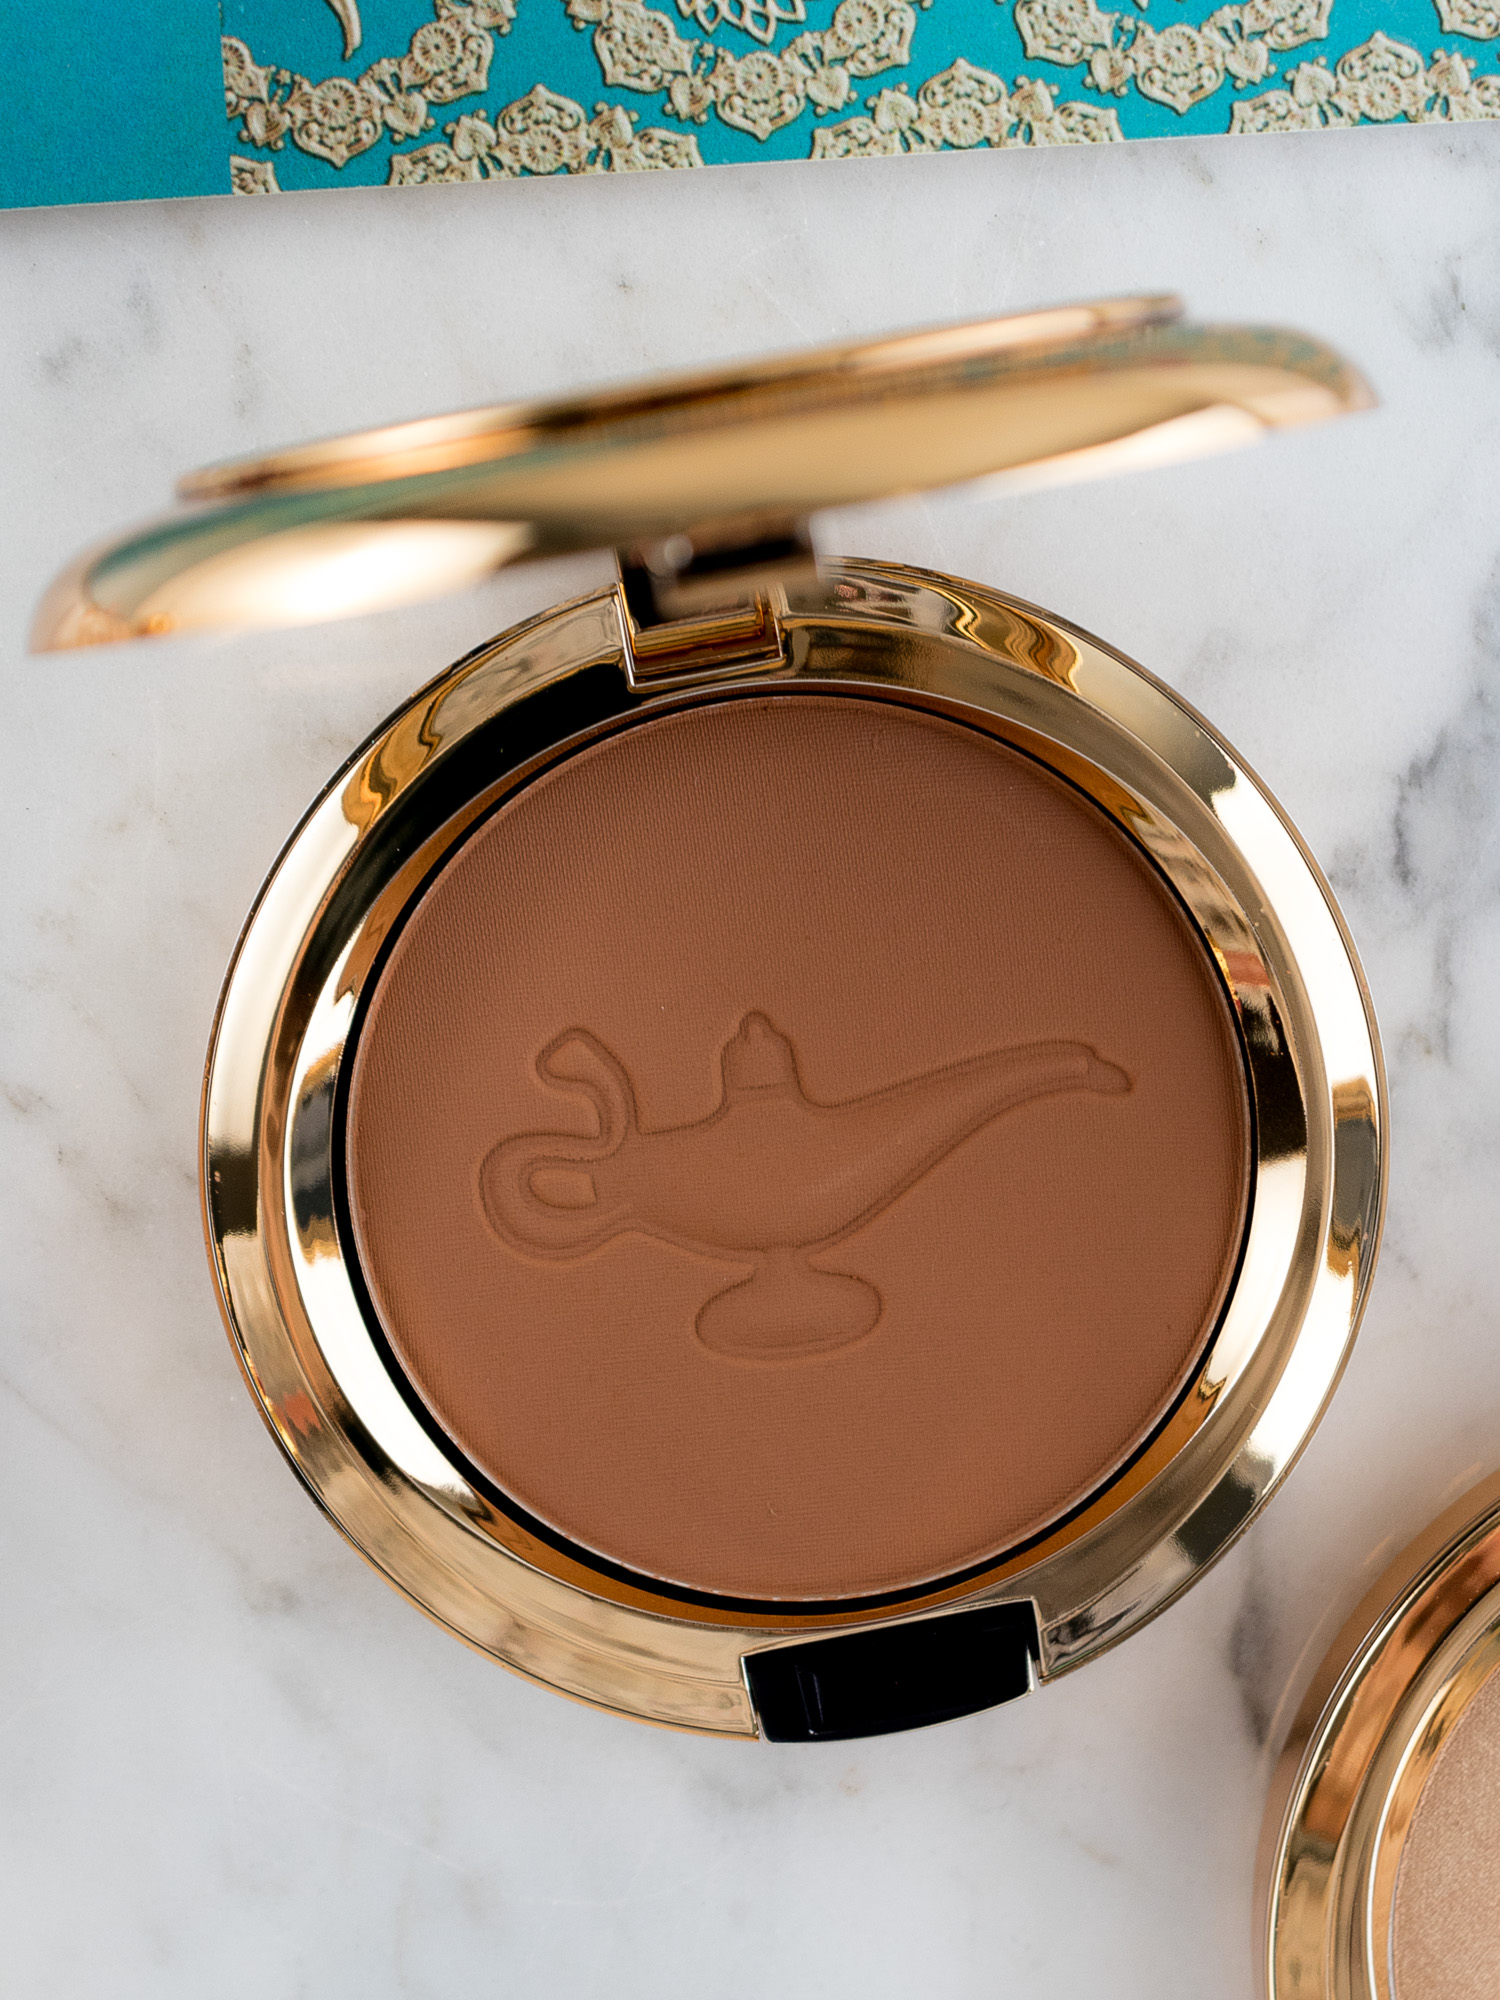 The Disney Aladdin Collection by MAC Cosmetics: Powder Blush - Your Wish is My Command